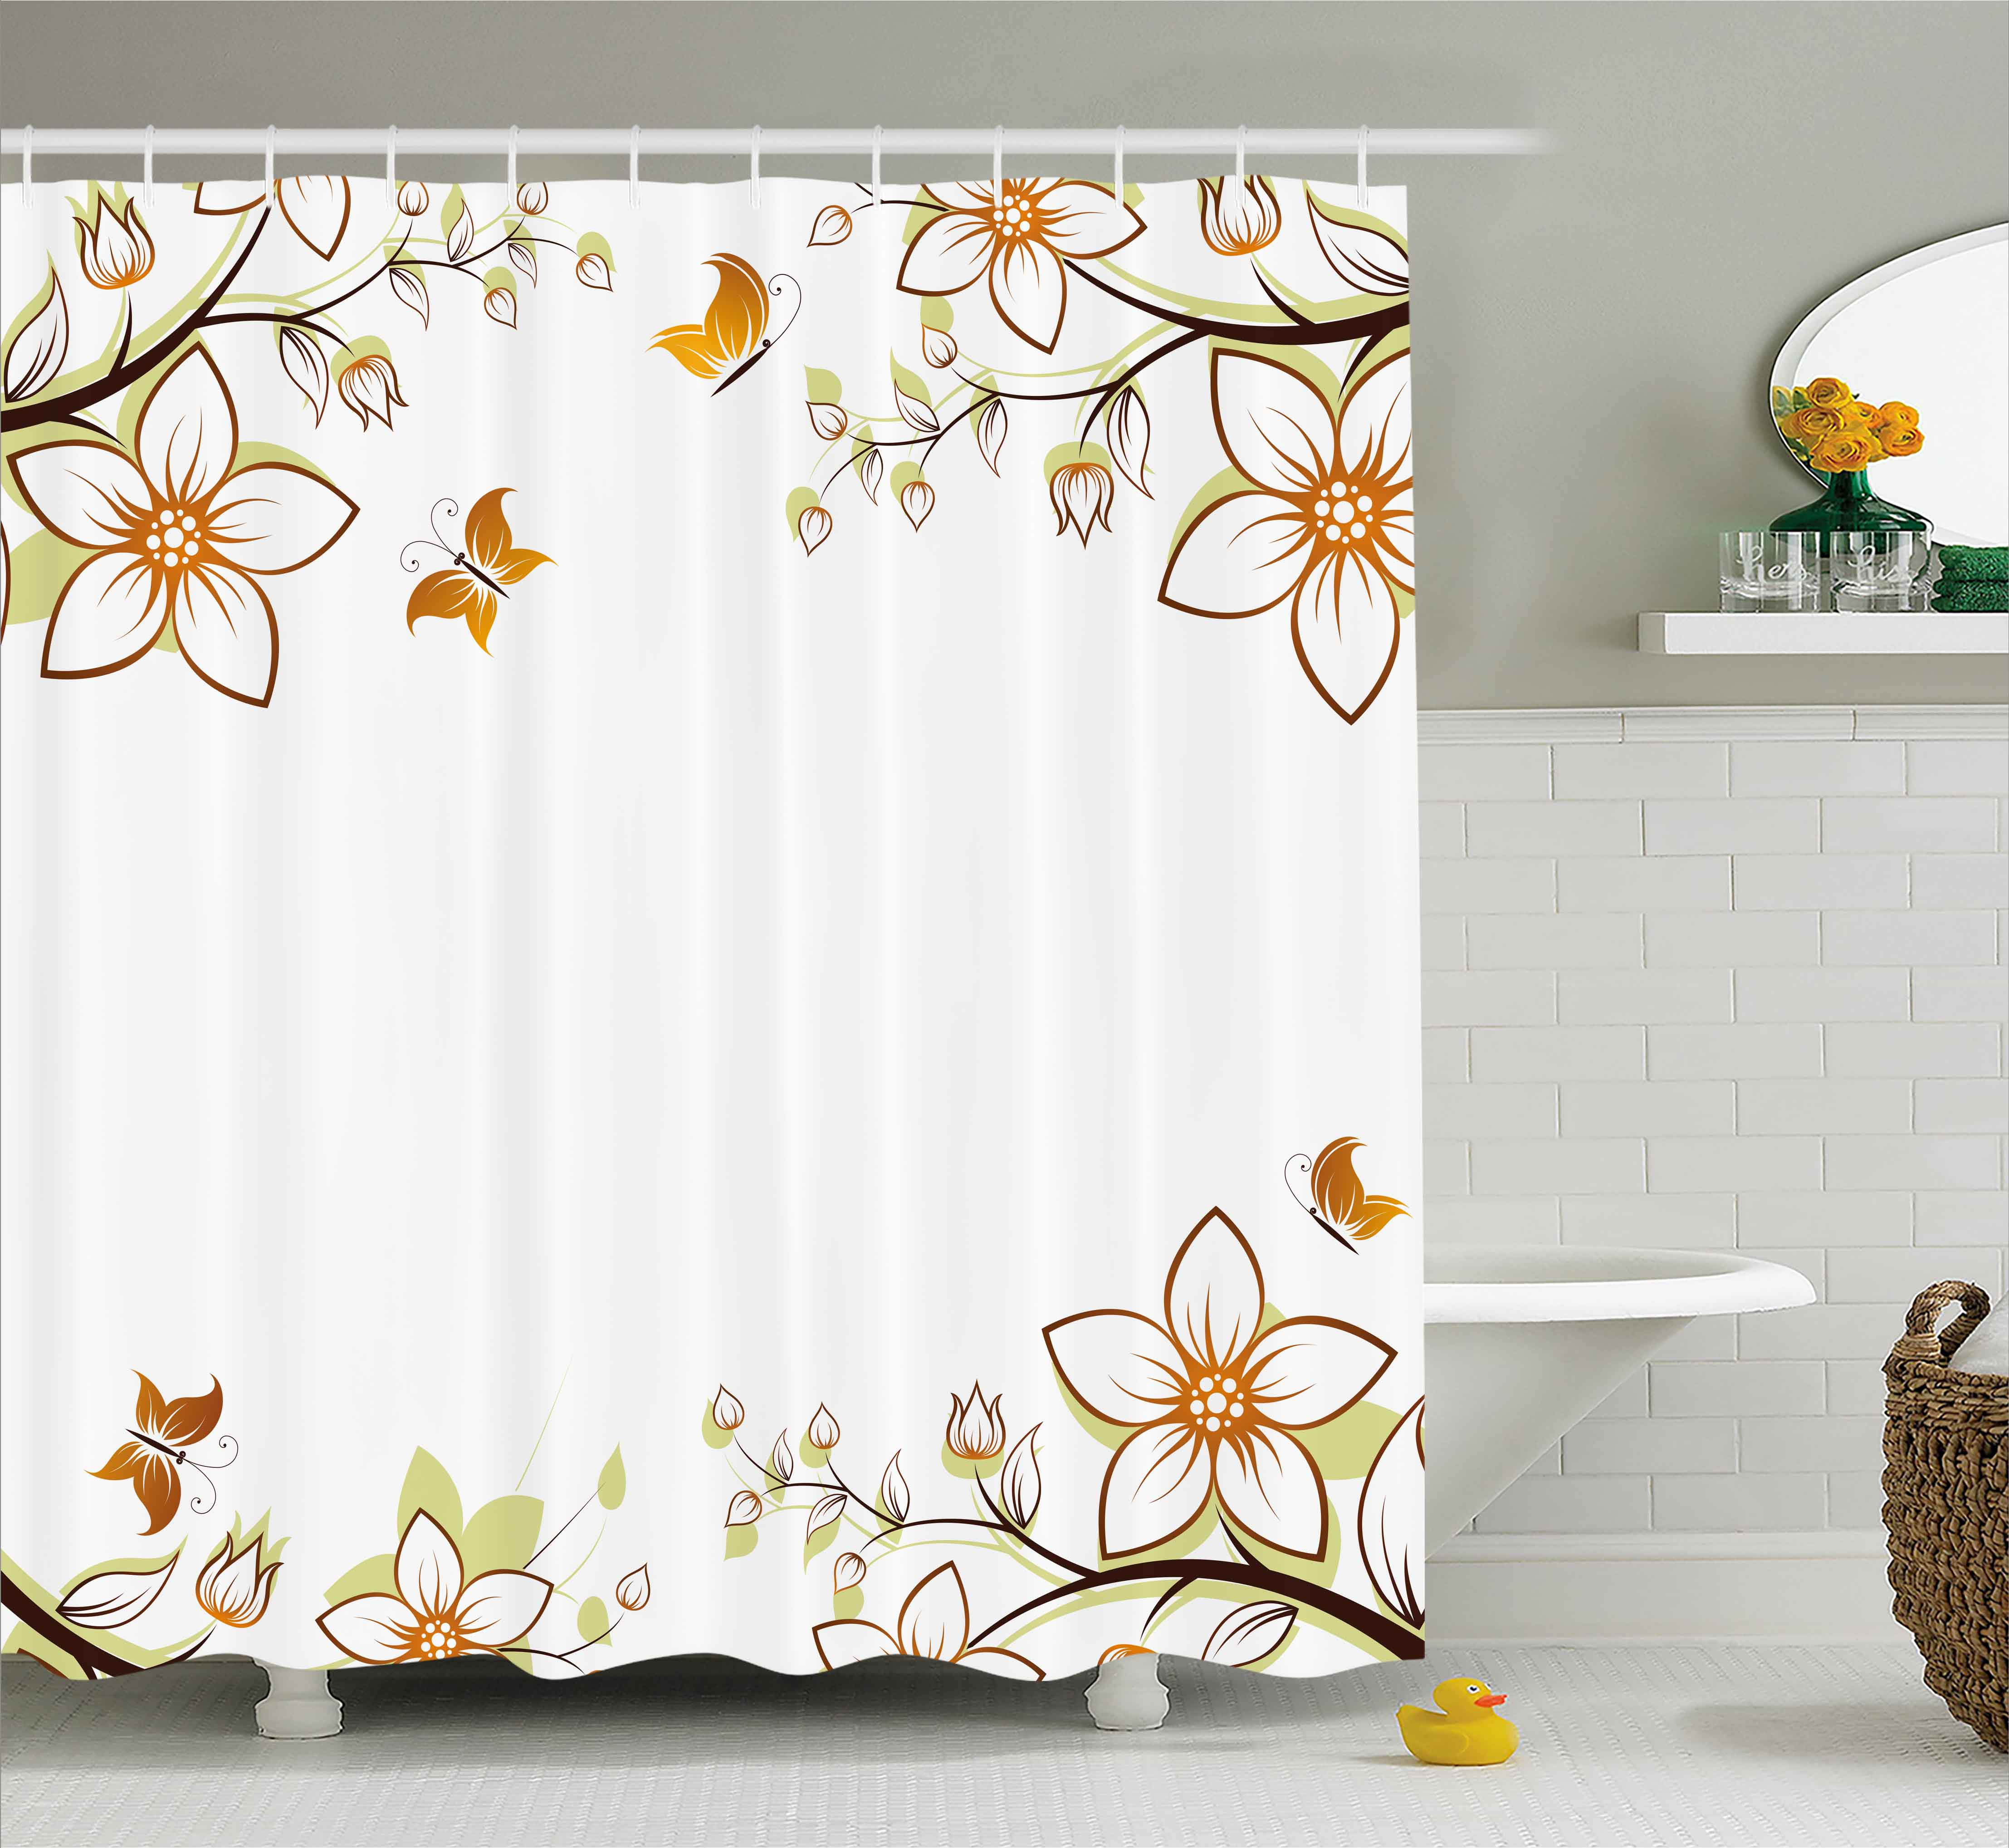 Floral Shower Curtain, Flowers Leaves Branches Buds Butterflies Frame Like  Image Print, Fabric Bathroom